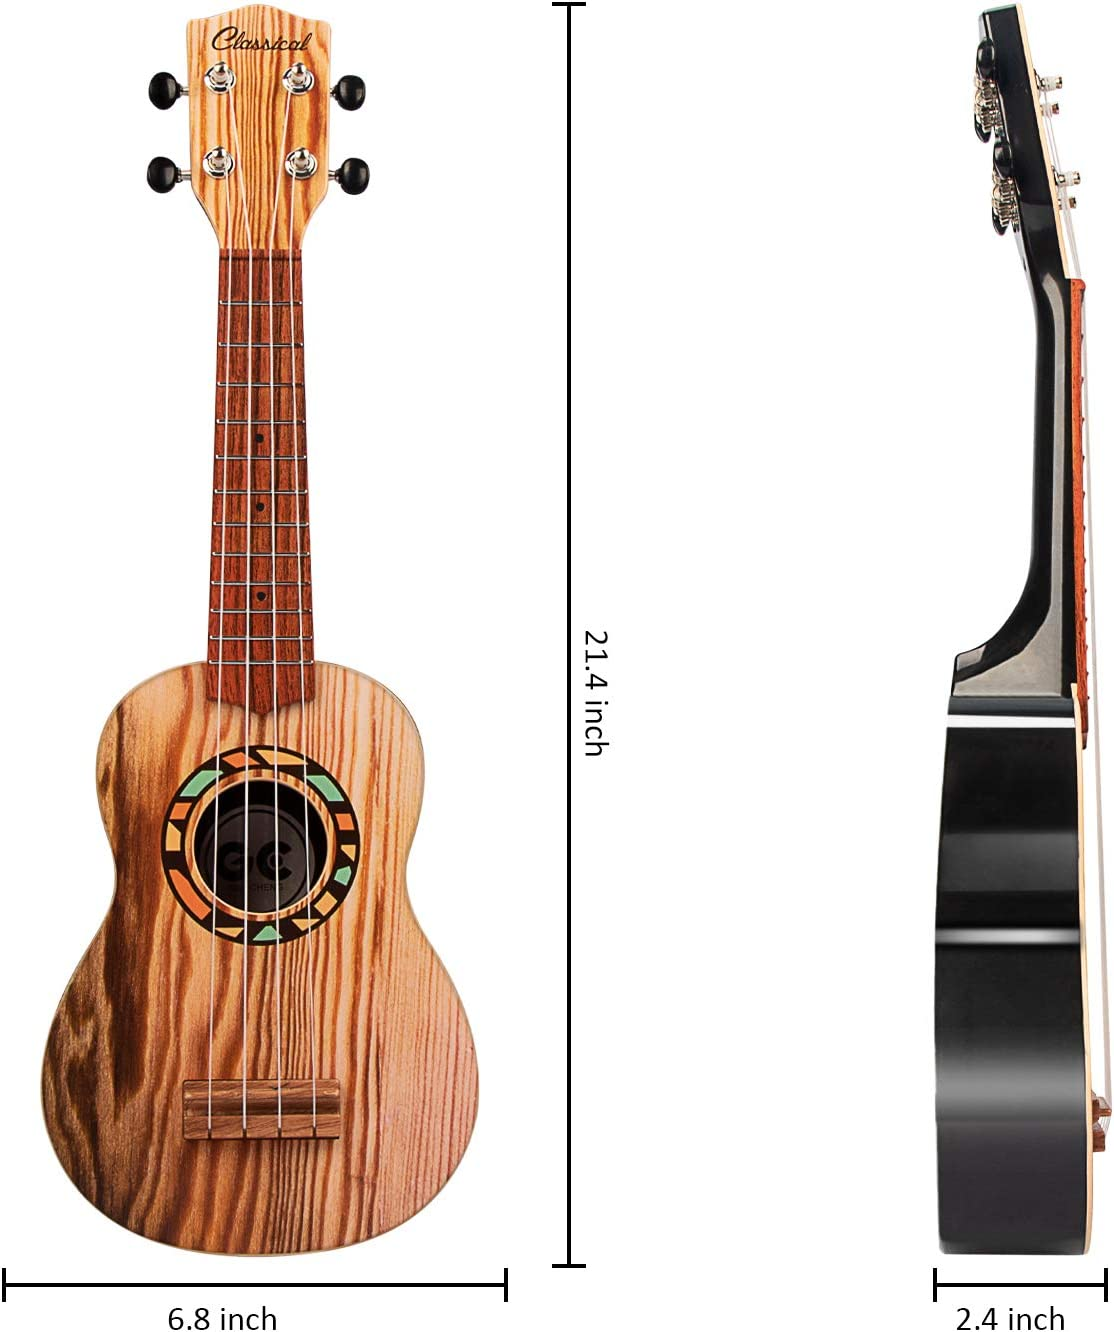 21 Inch LeQi Kids Toy Ukulele Guitar for Toddller 4 Strings Children Musical Instruments Educational Toys with The Picks and Strap for Beginner Starter